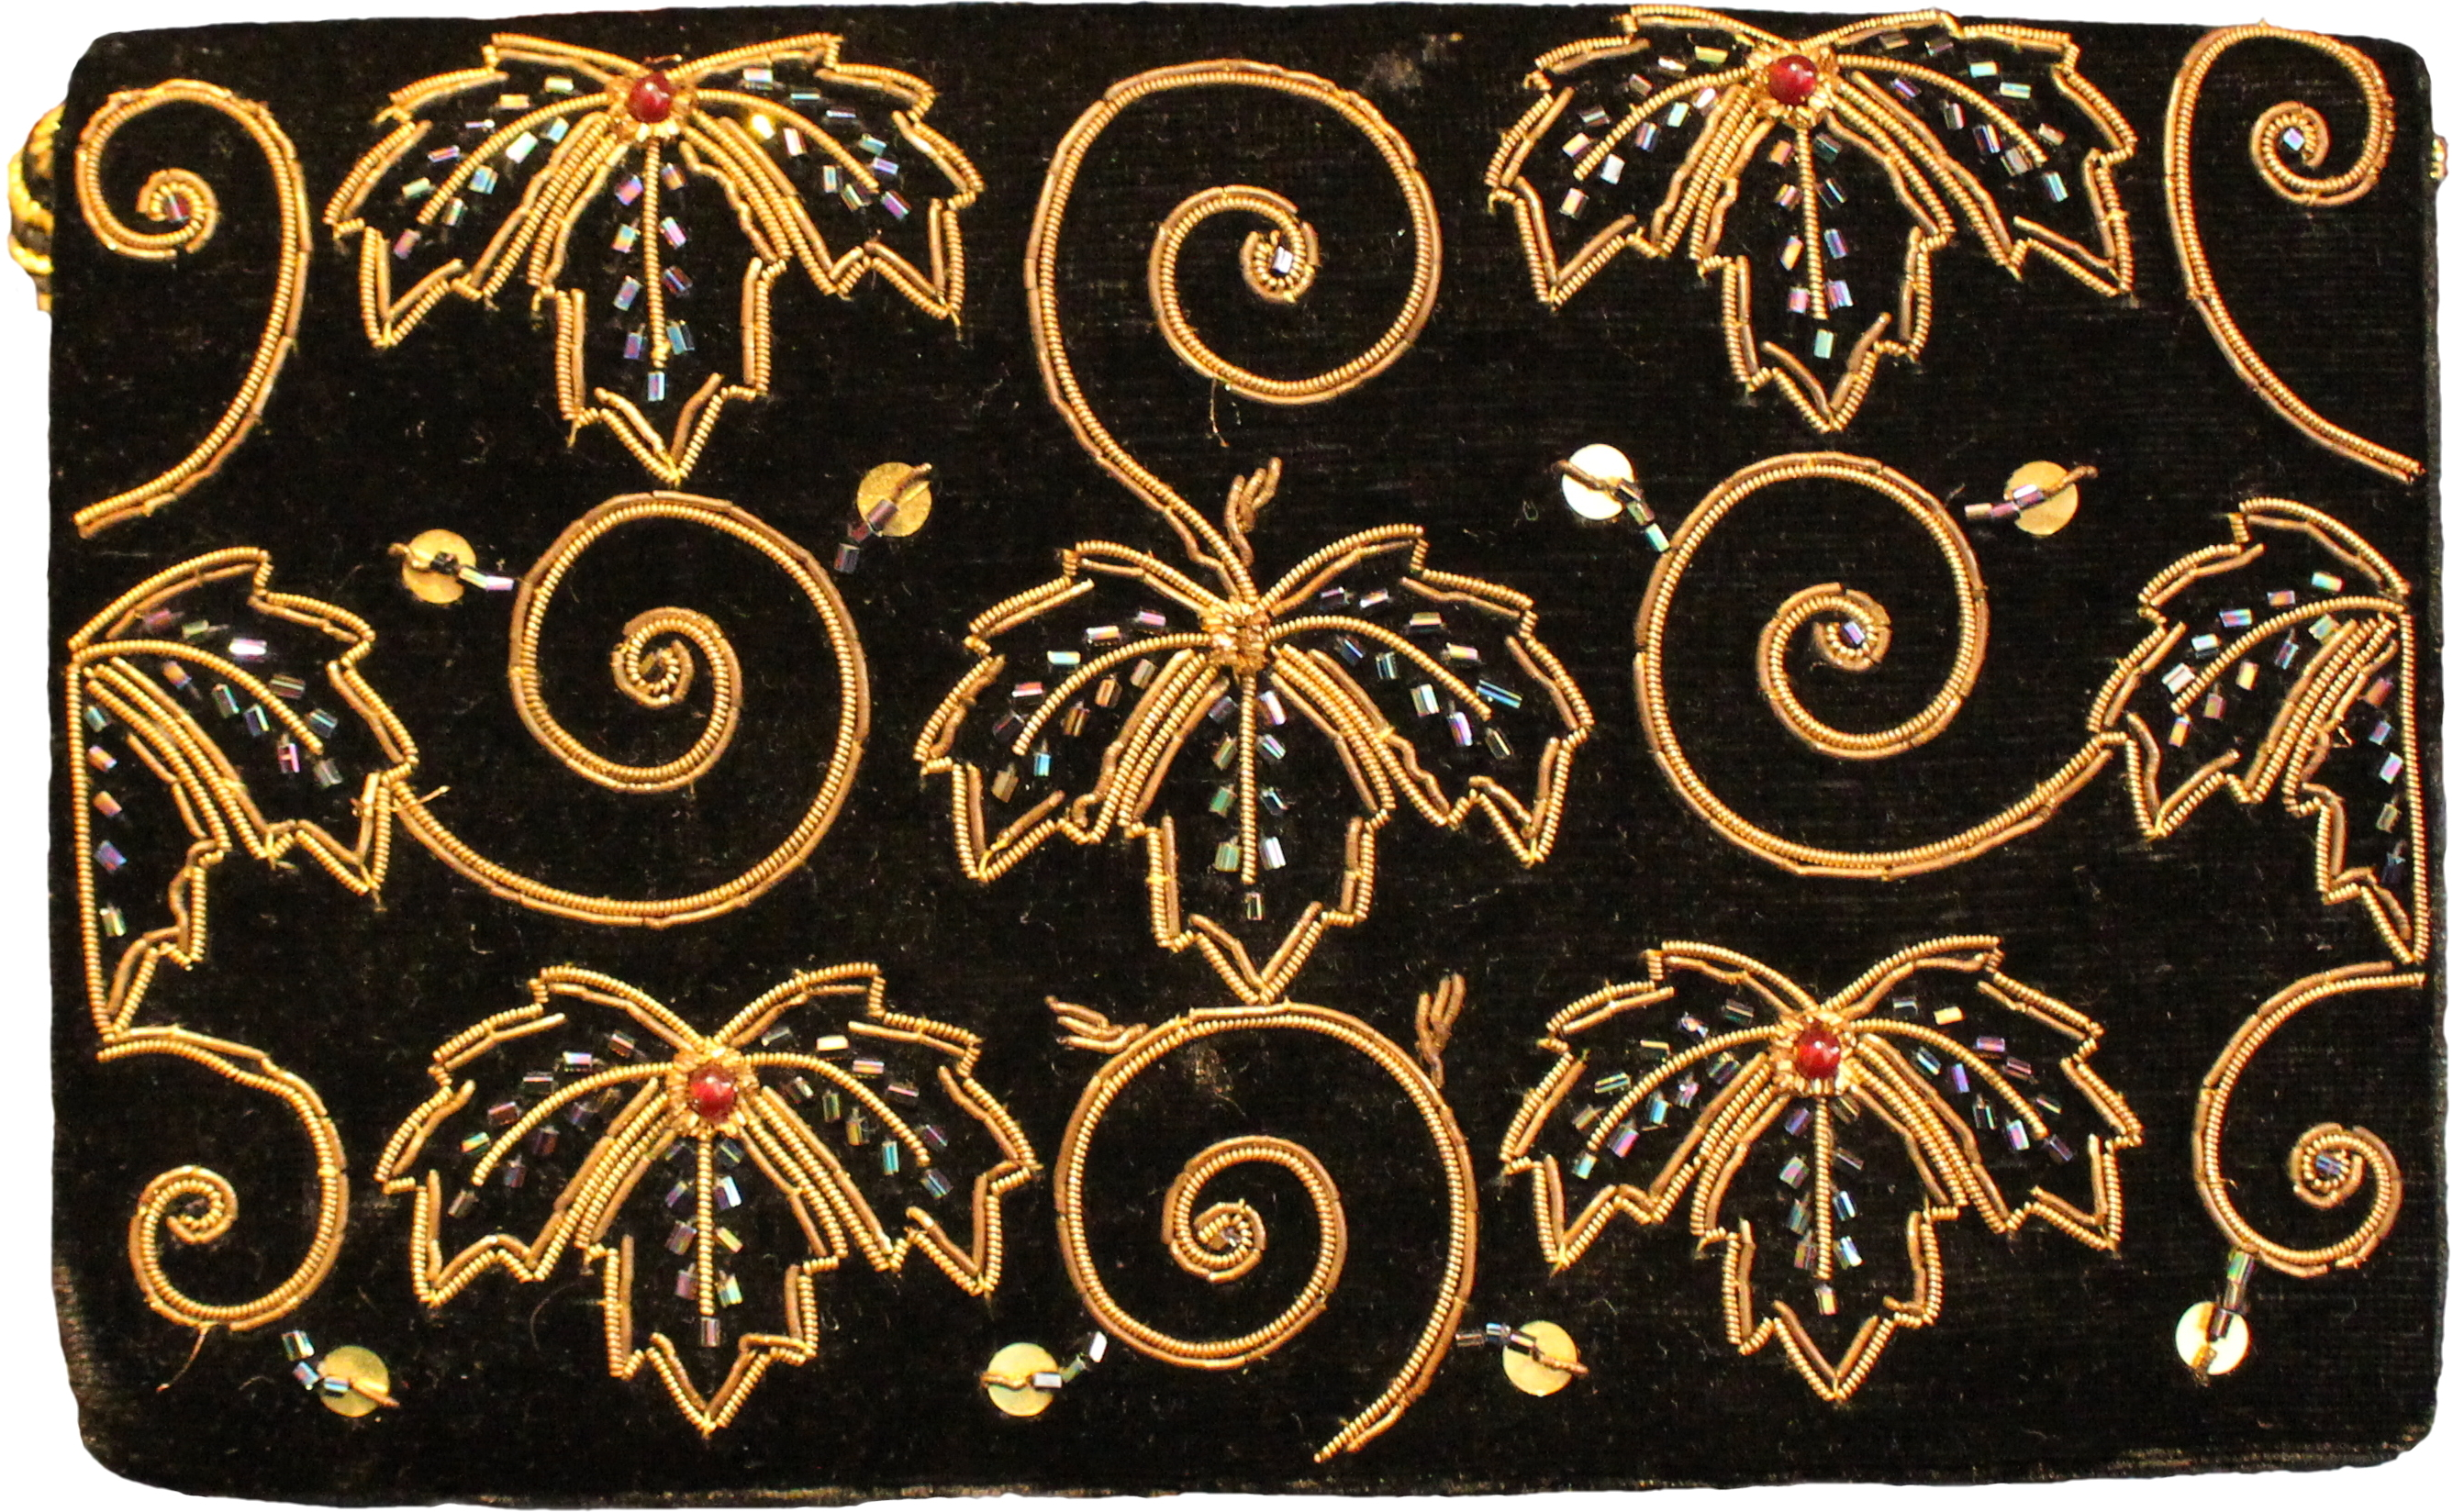 Black velvet evening bag. It's the size of a large purse, rectangular, and decorated with sequins, small plastic beads, and leaves and spirals made from metal segments.